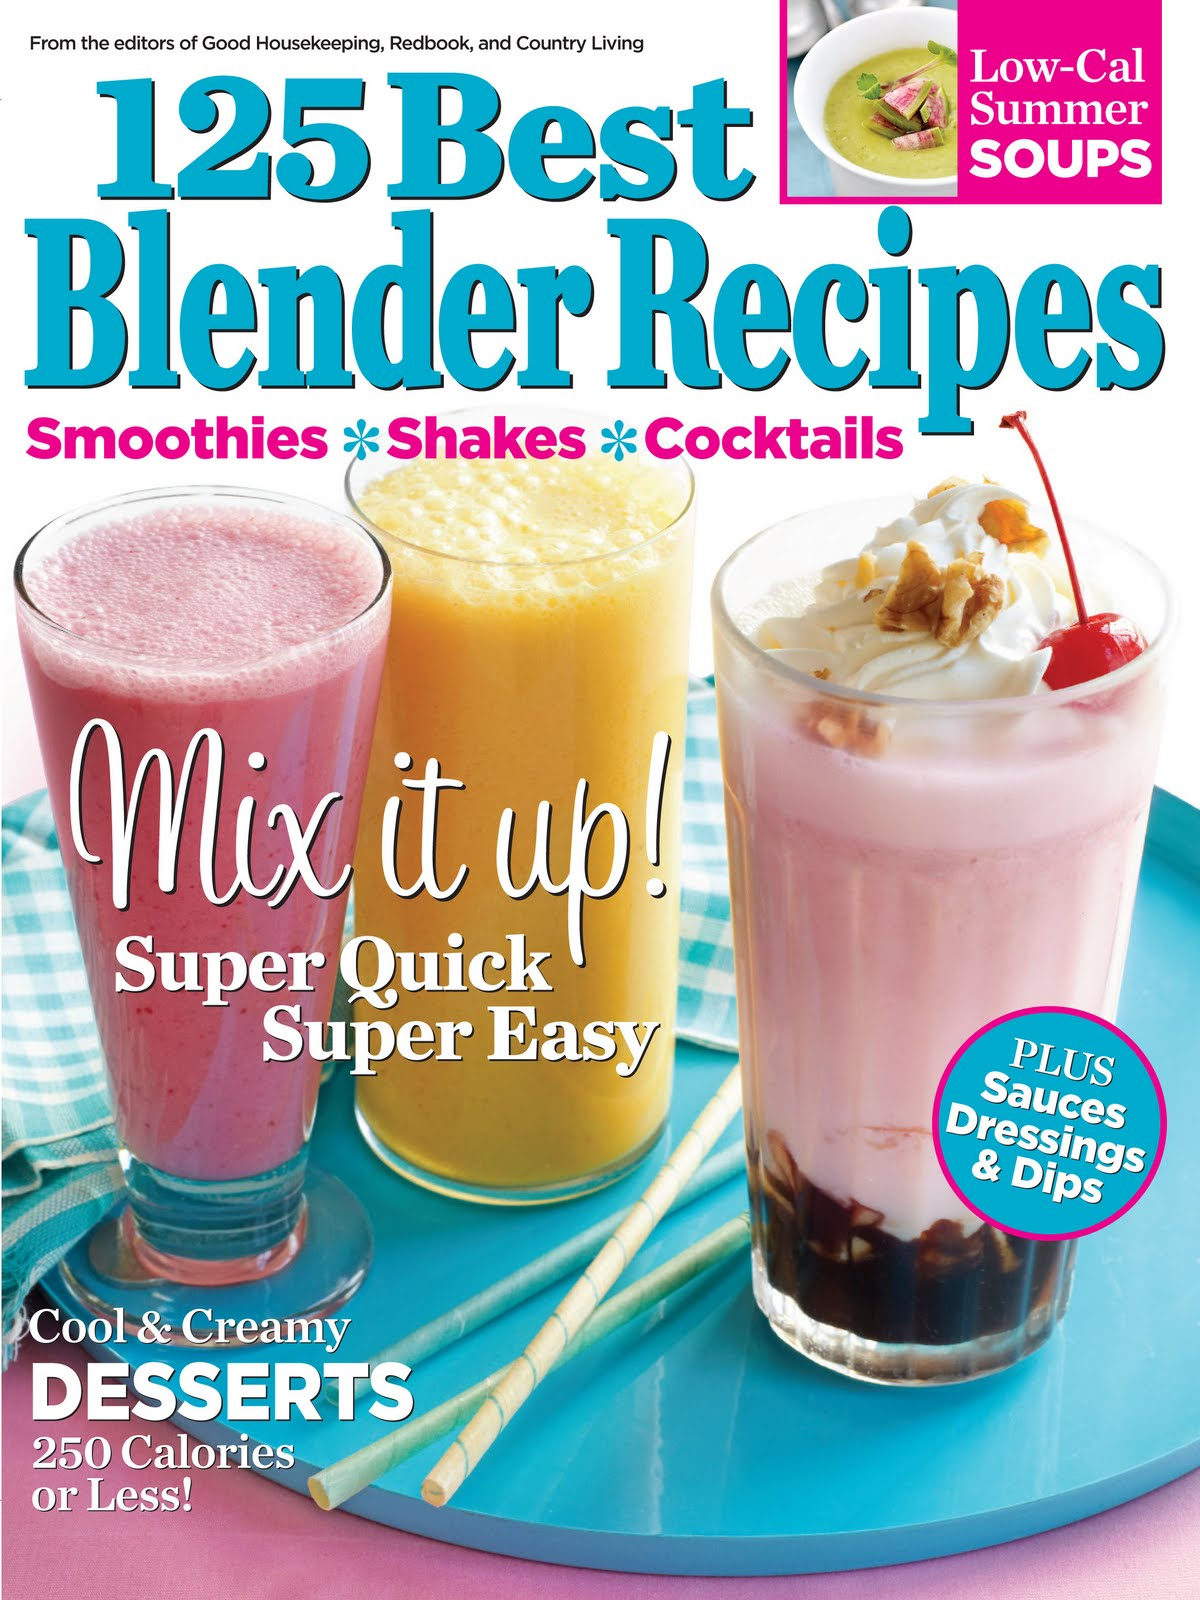 125 Best Blender Recipes Magazine Review